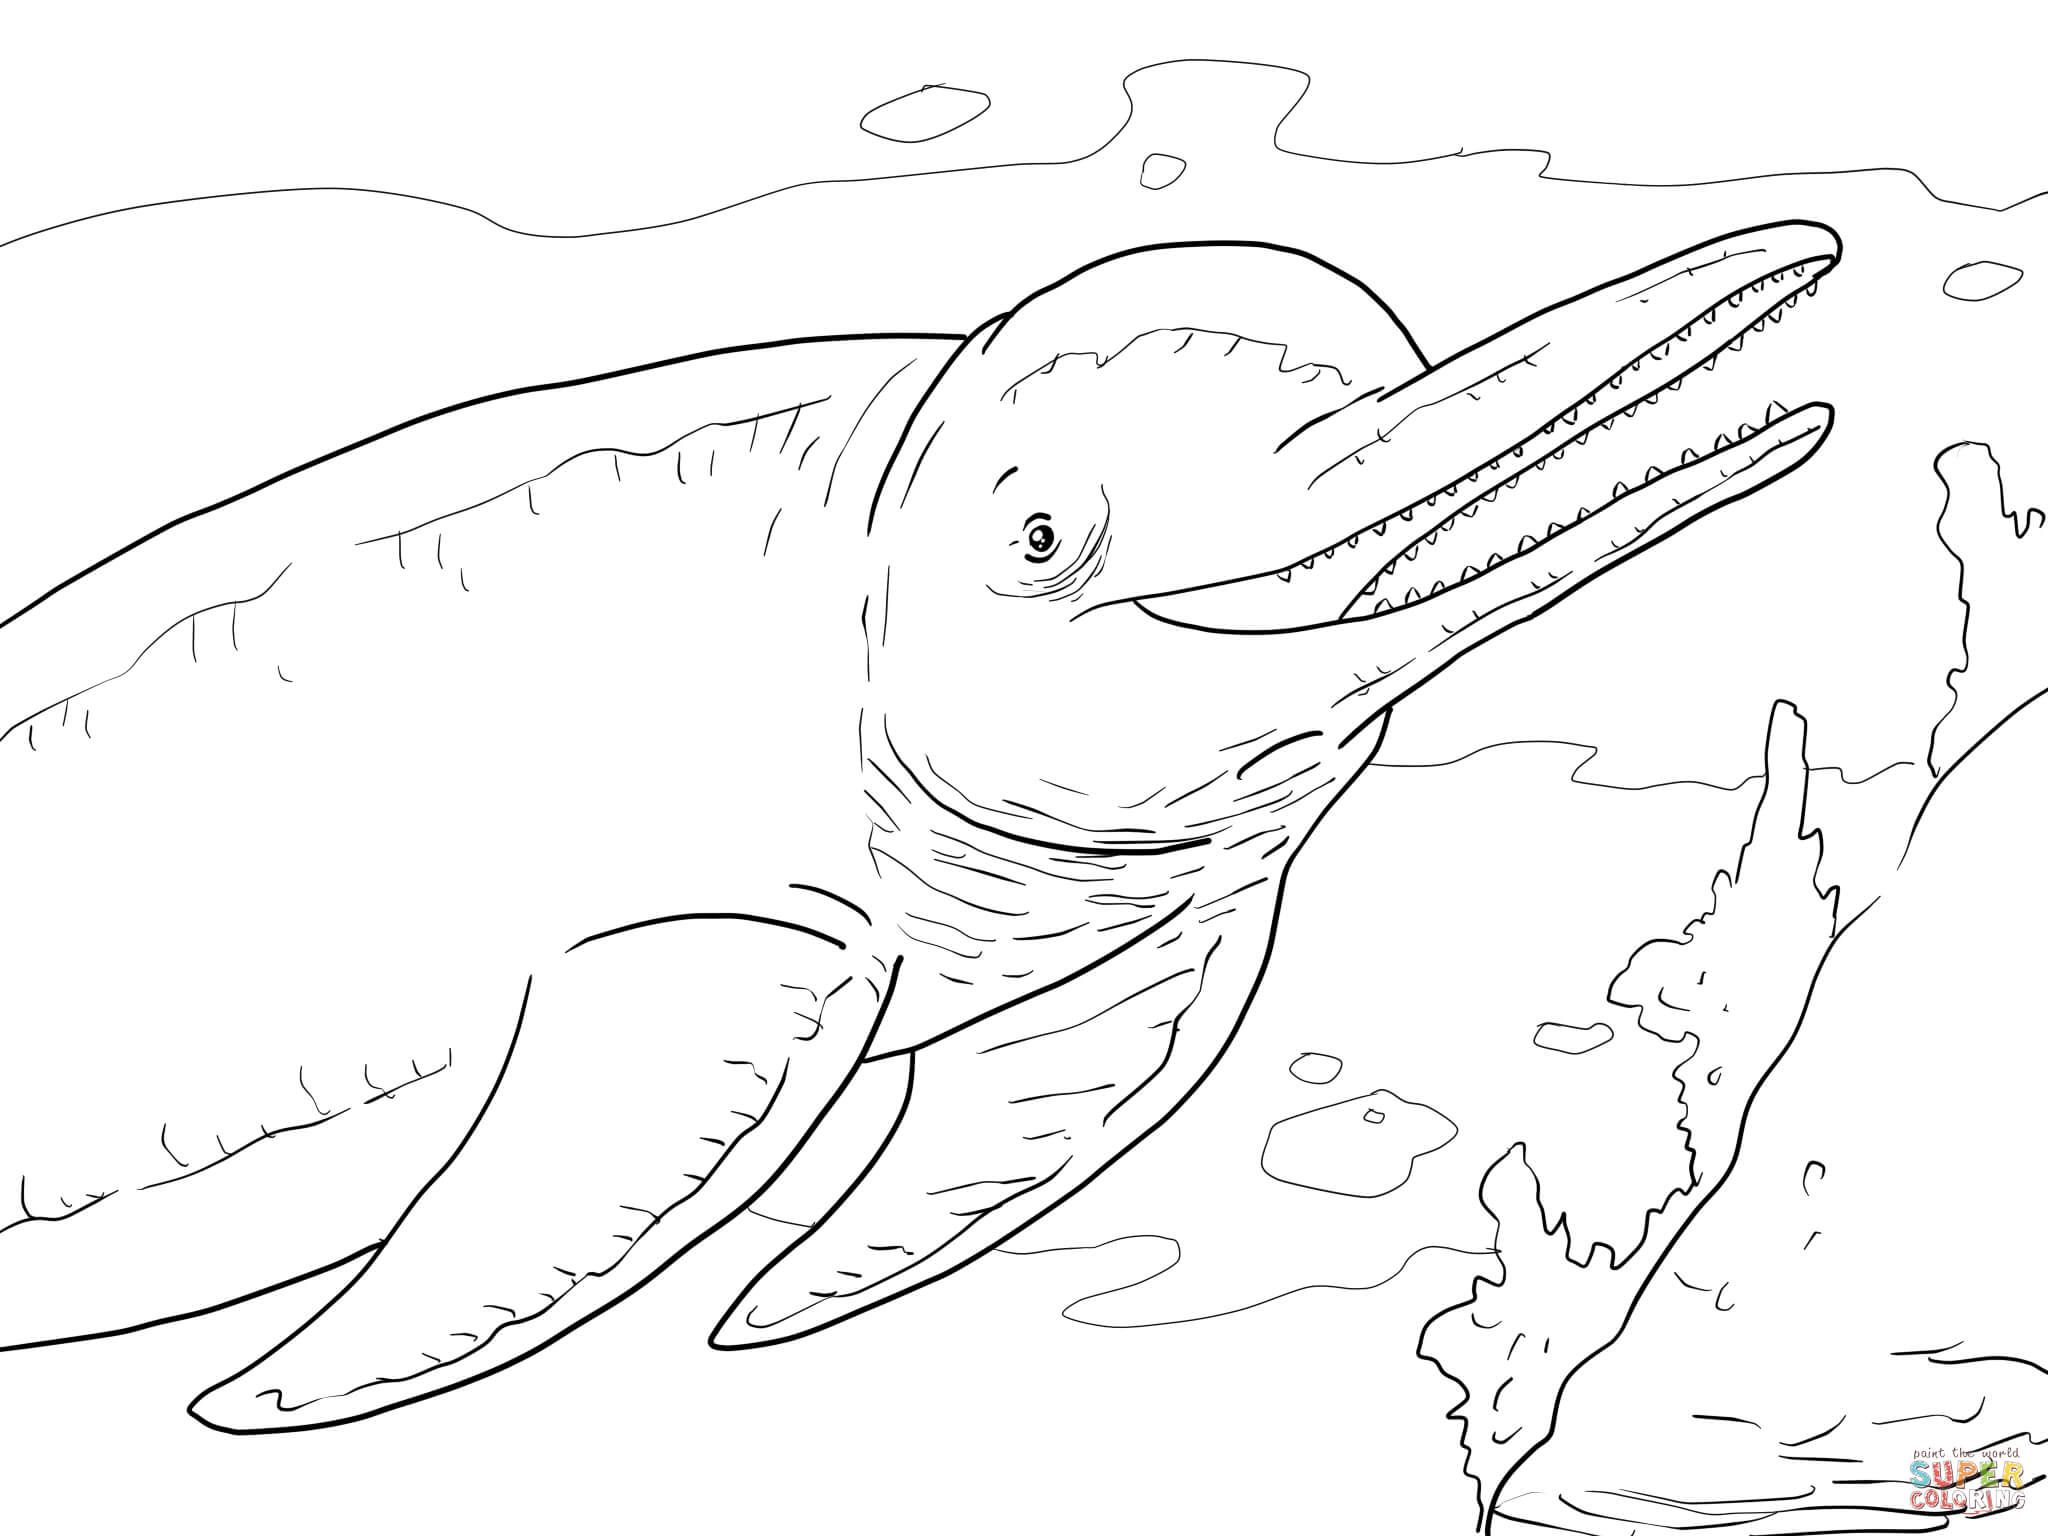 Amazon River Dolphin Boto Coloring Page From Dolphins Category